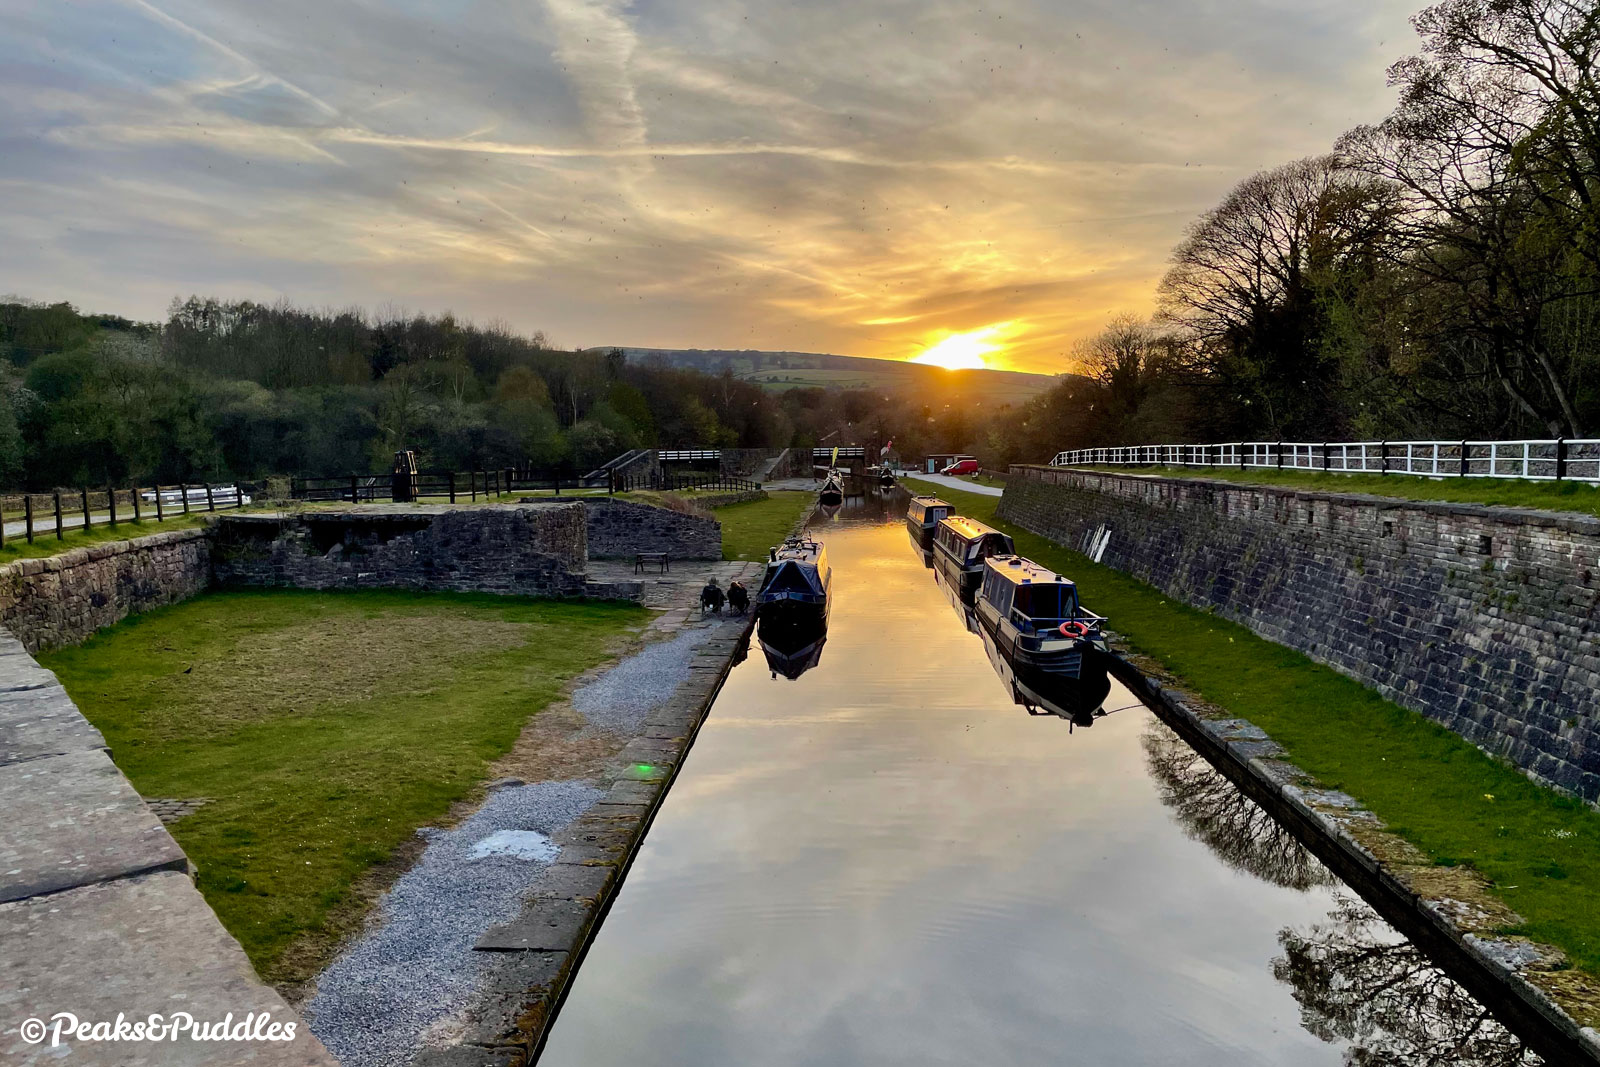 The end of the adventure: sunset at Bugsworth Basin.